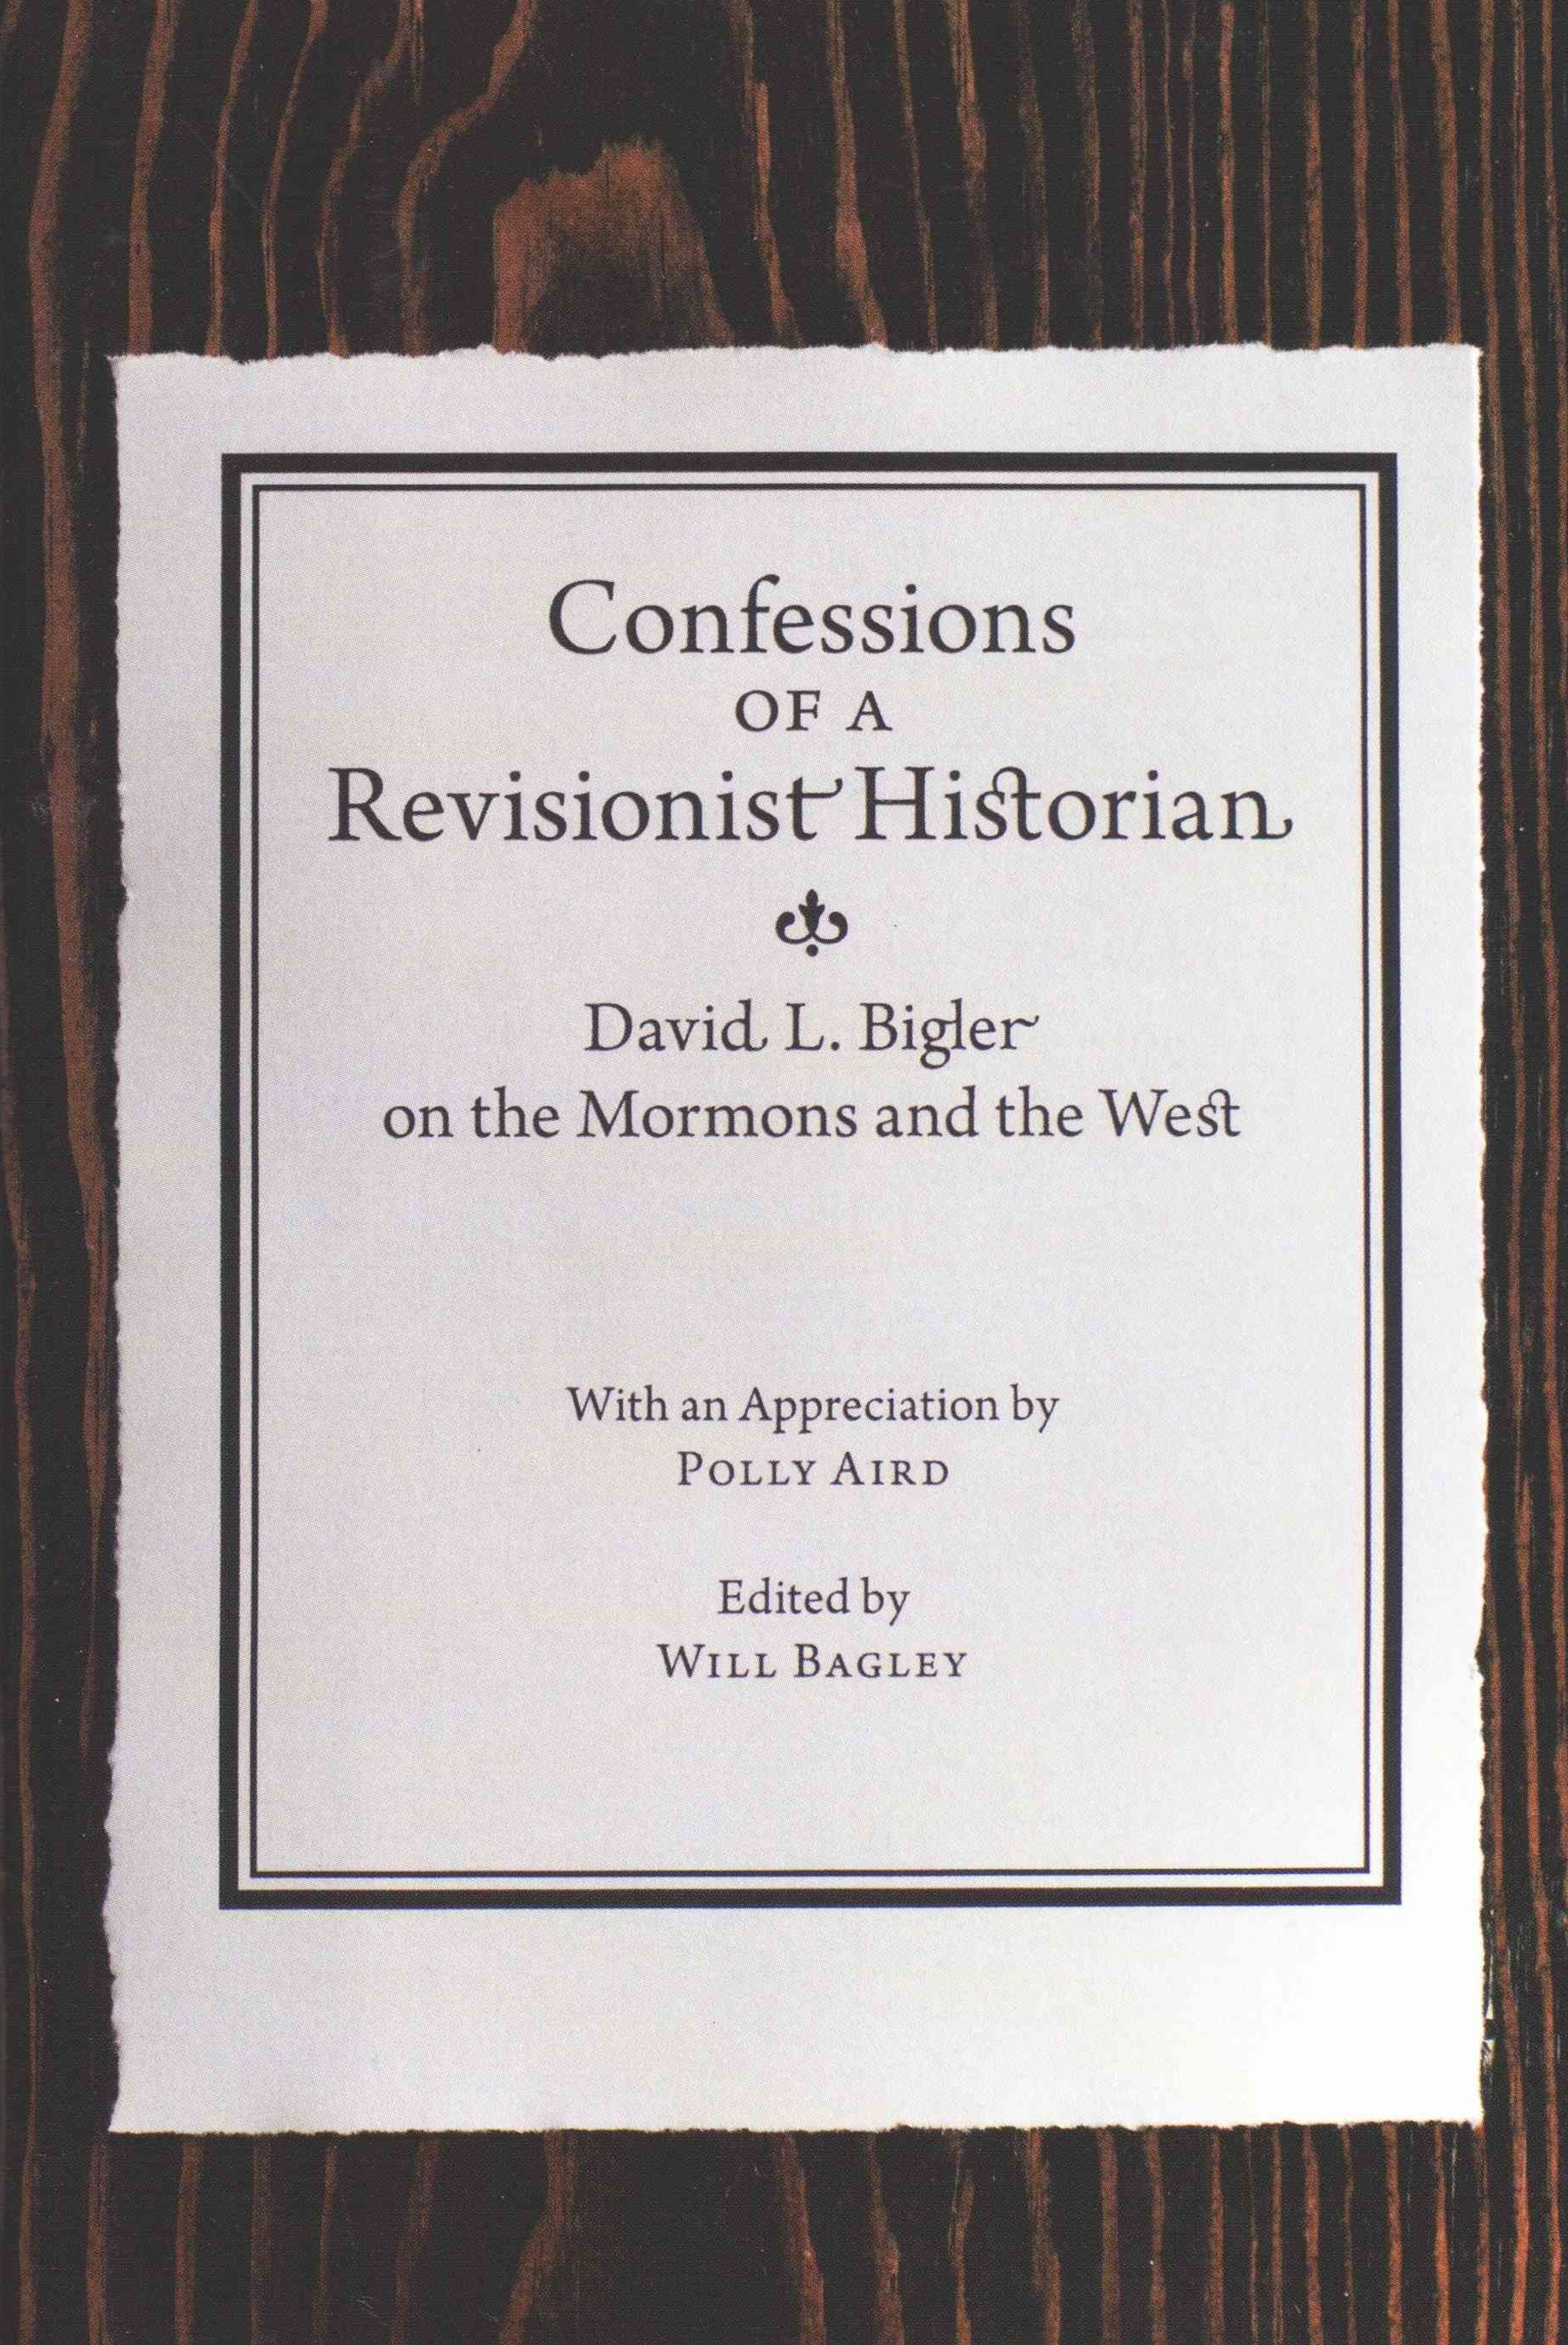 Confessions of a Revisionist Historian